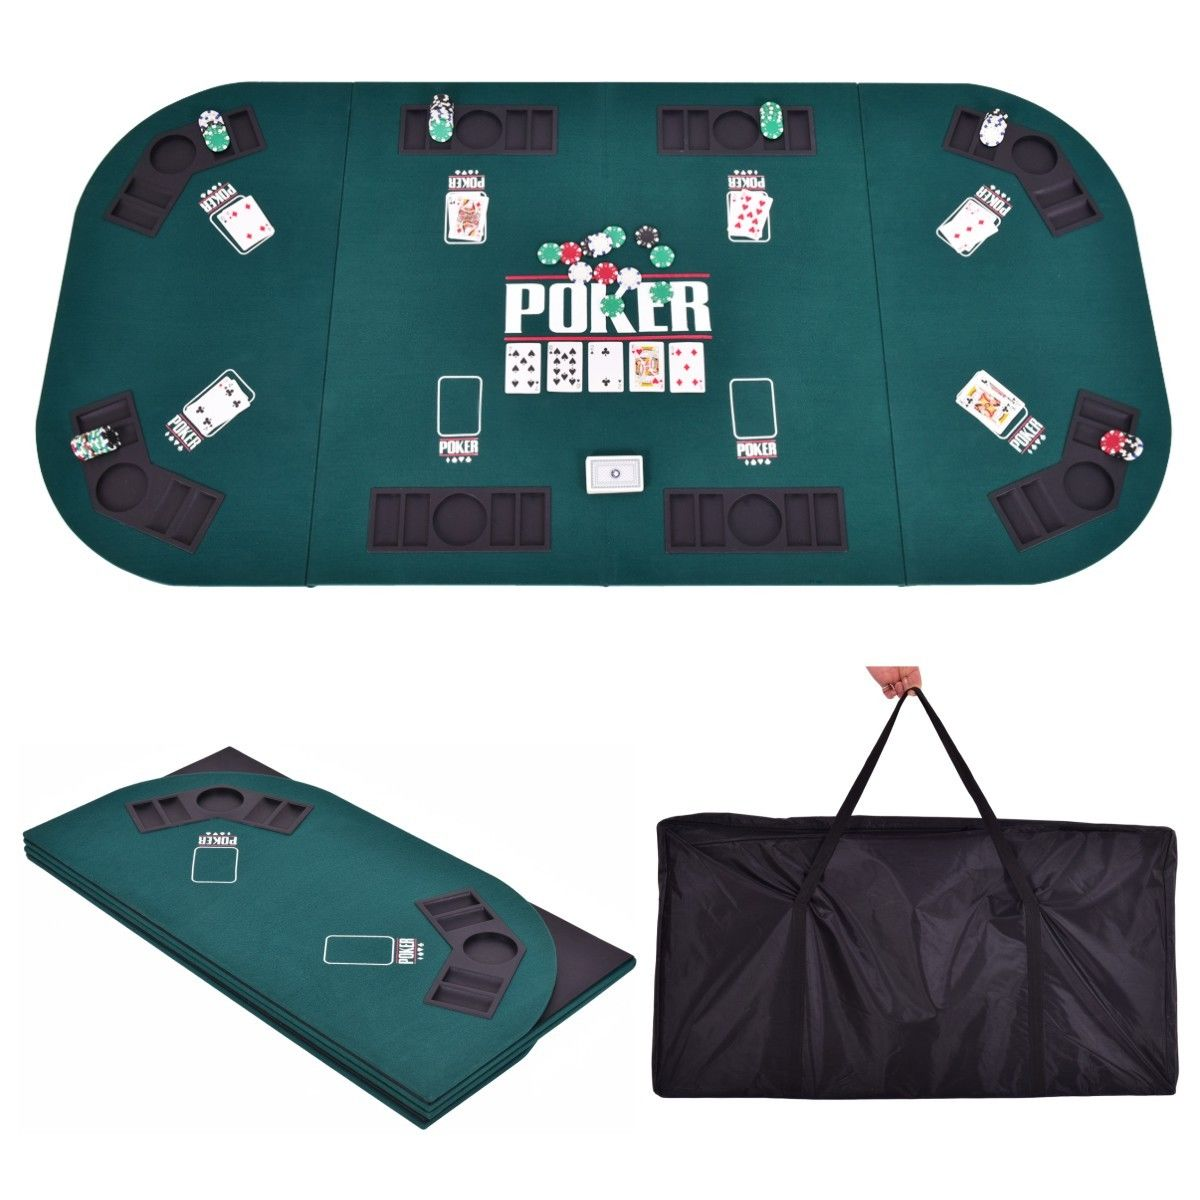 Costway Folding Four Fold 8 Player Poker Table Top & Carrying Case Portable Green by Costway